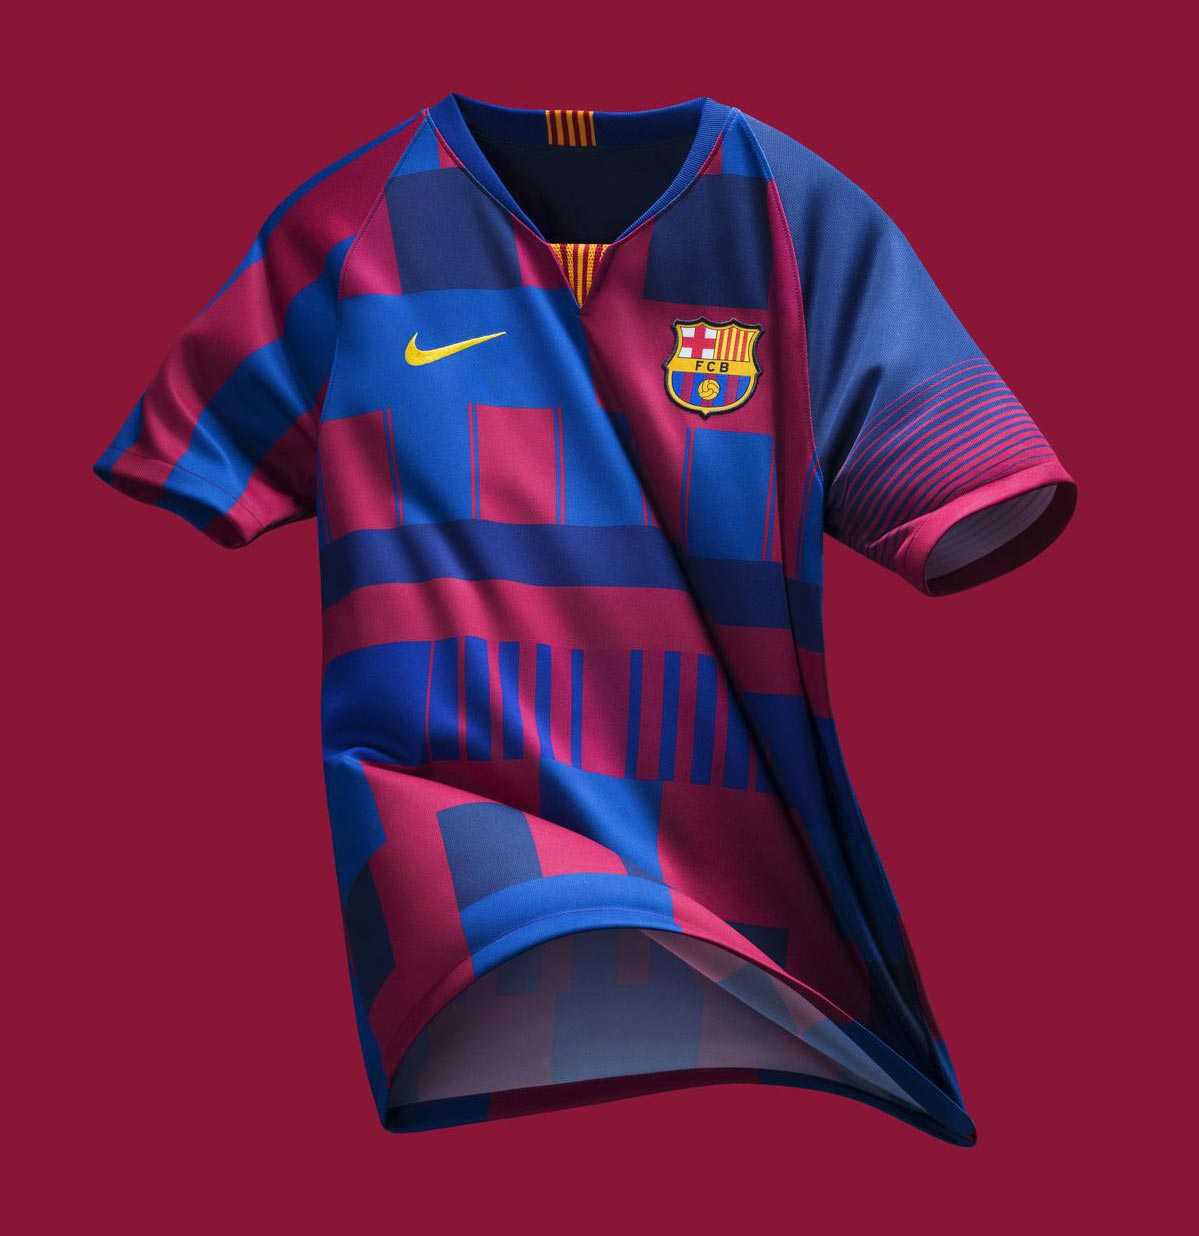 2615a6805f6 Nike FC Barcelona What The 20th Anniversary Jersey Released - Footy ...